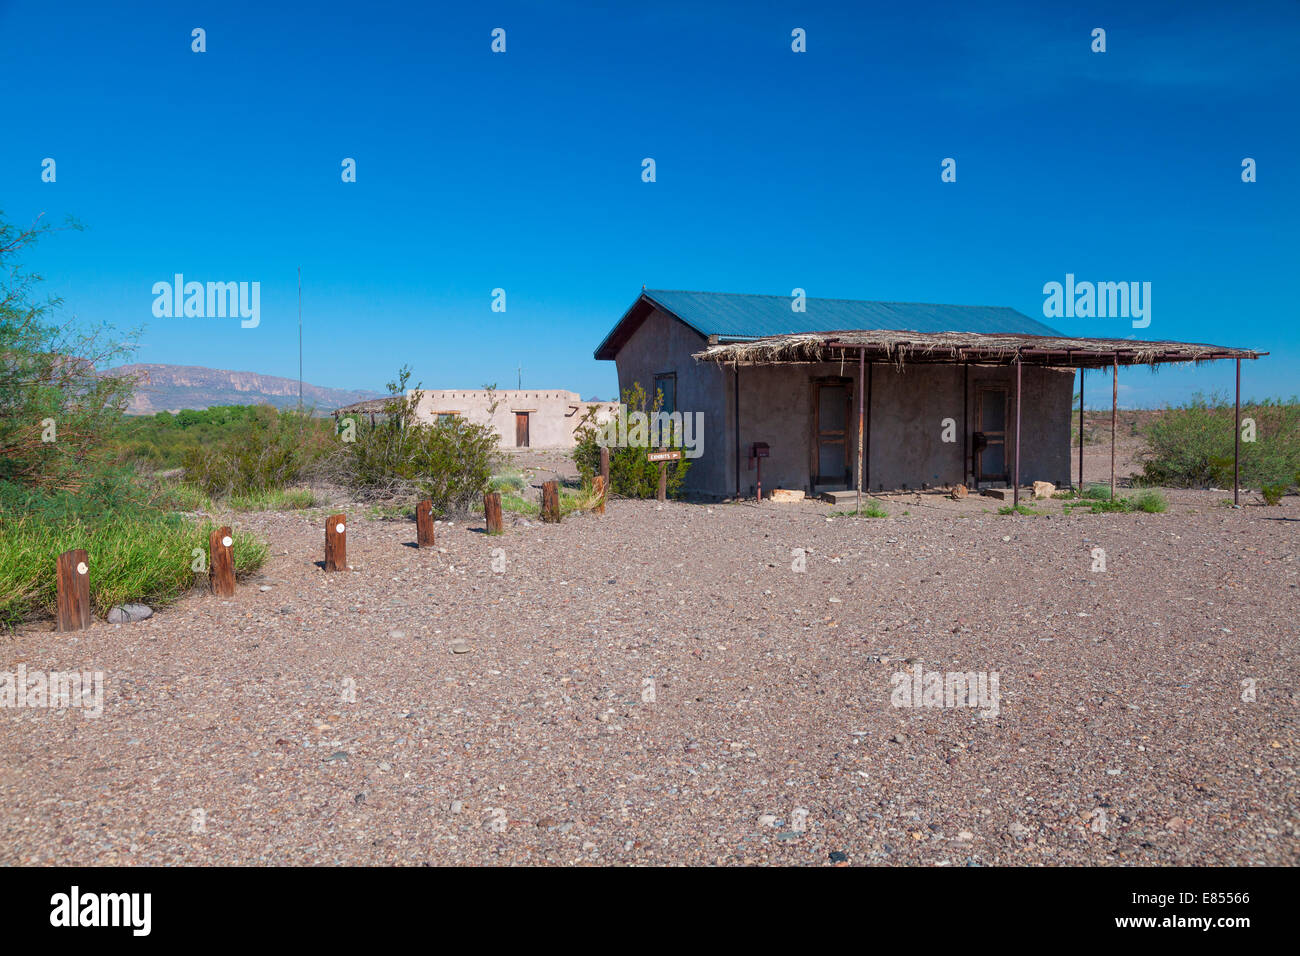 Museum at Castolon Historic District in Big Bend National Park. Stock Photo